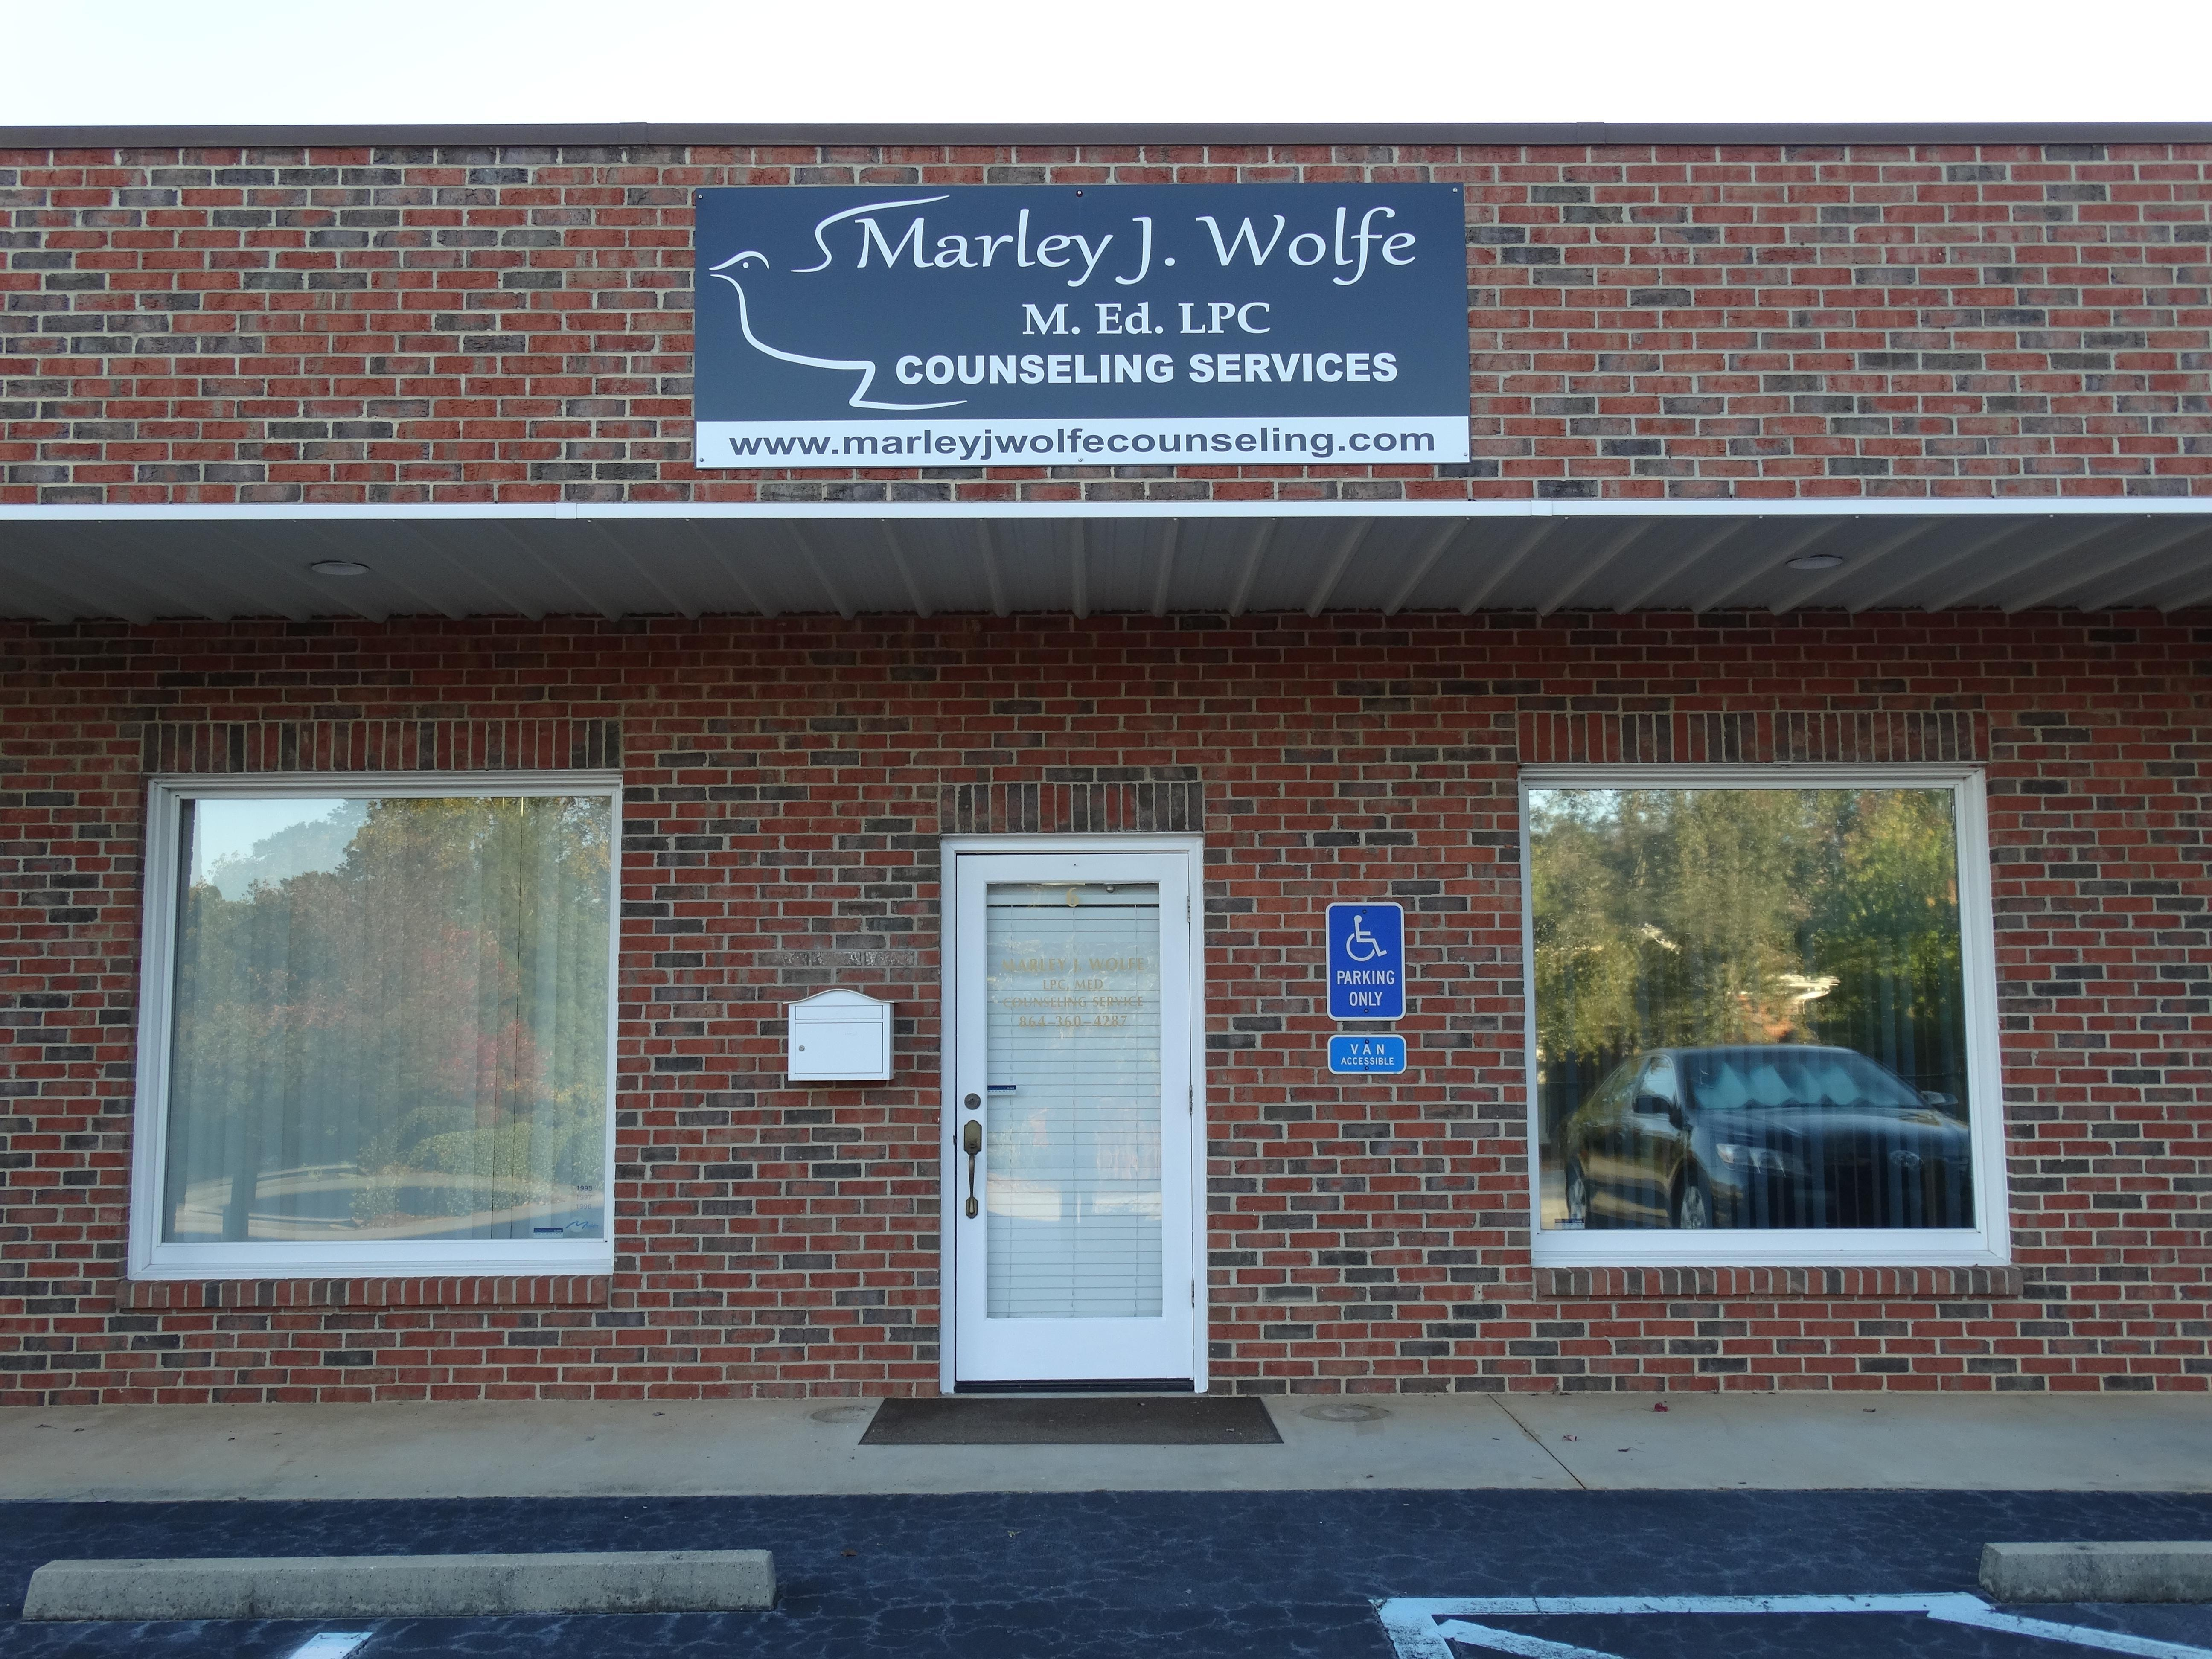 Marley J. Wolfe Counseling Services